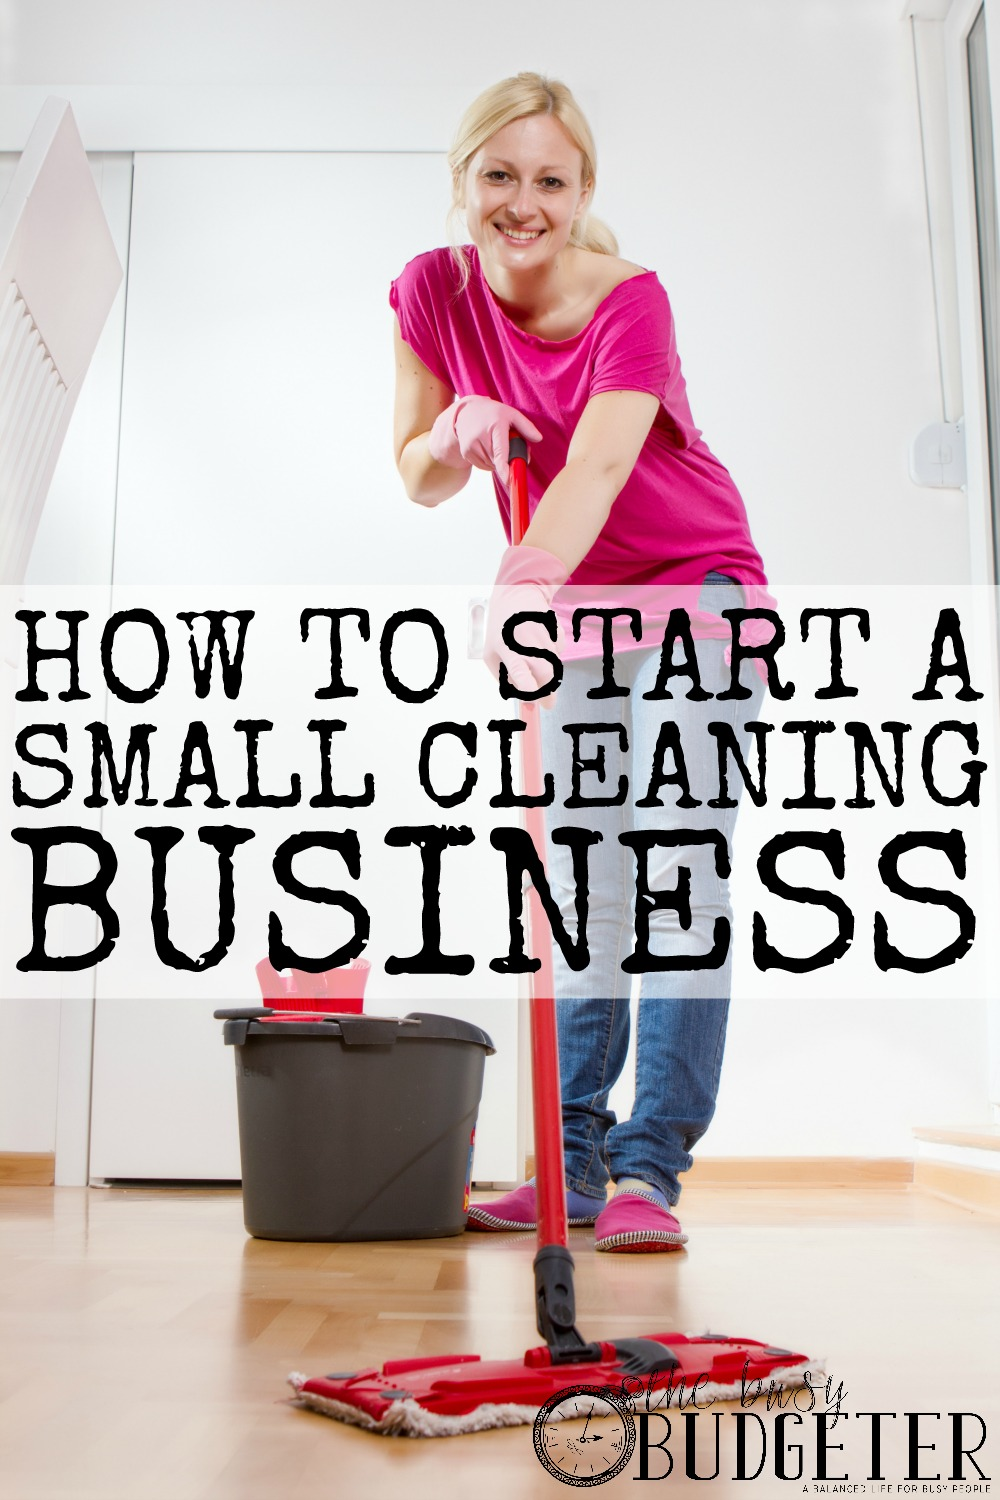 How to Start a Small Cleaning Business: This is a great idea! I mean, I actually enjoy making our home look clean and beautiful and cleaning is great exercise! My best friend's house is a mess and she's always working...she's totally a potential client!